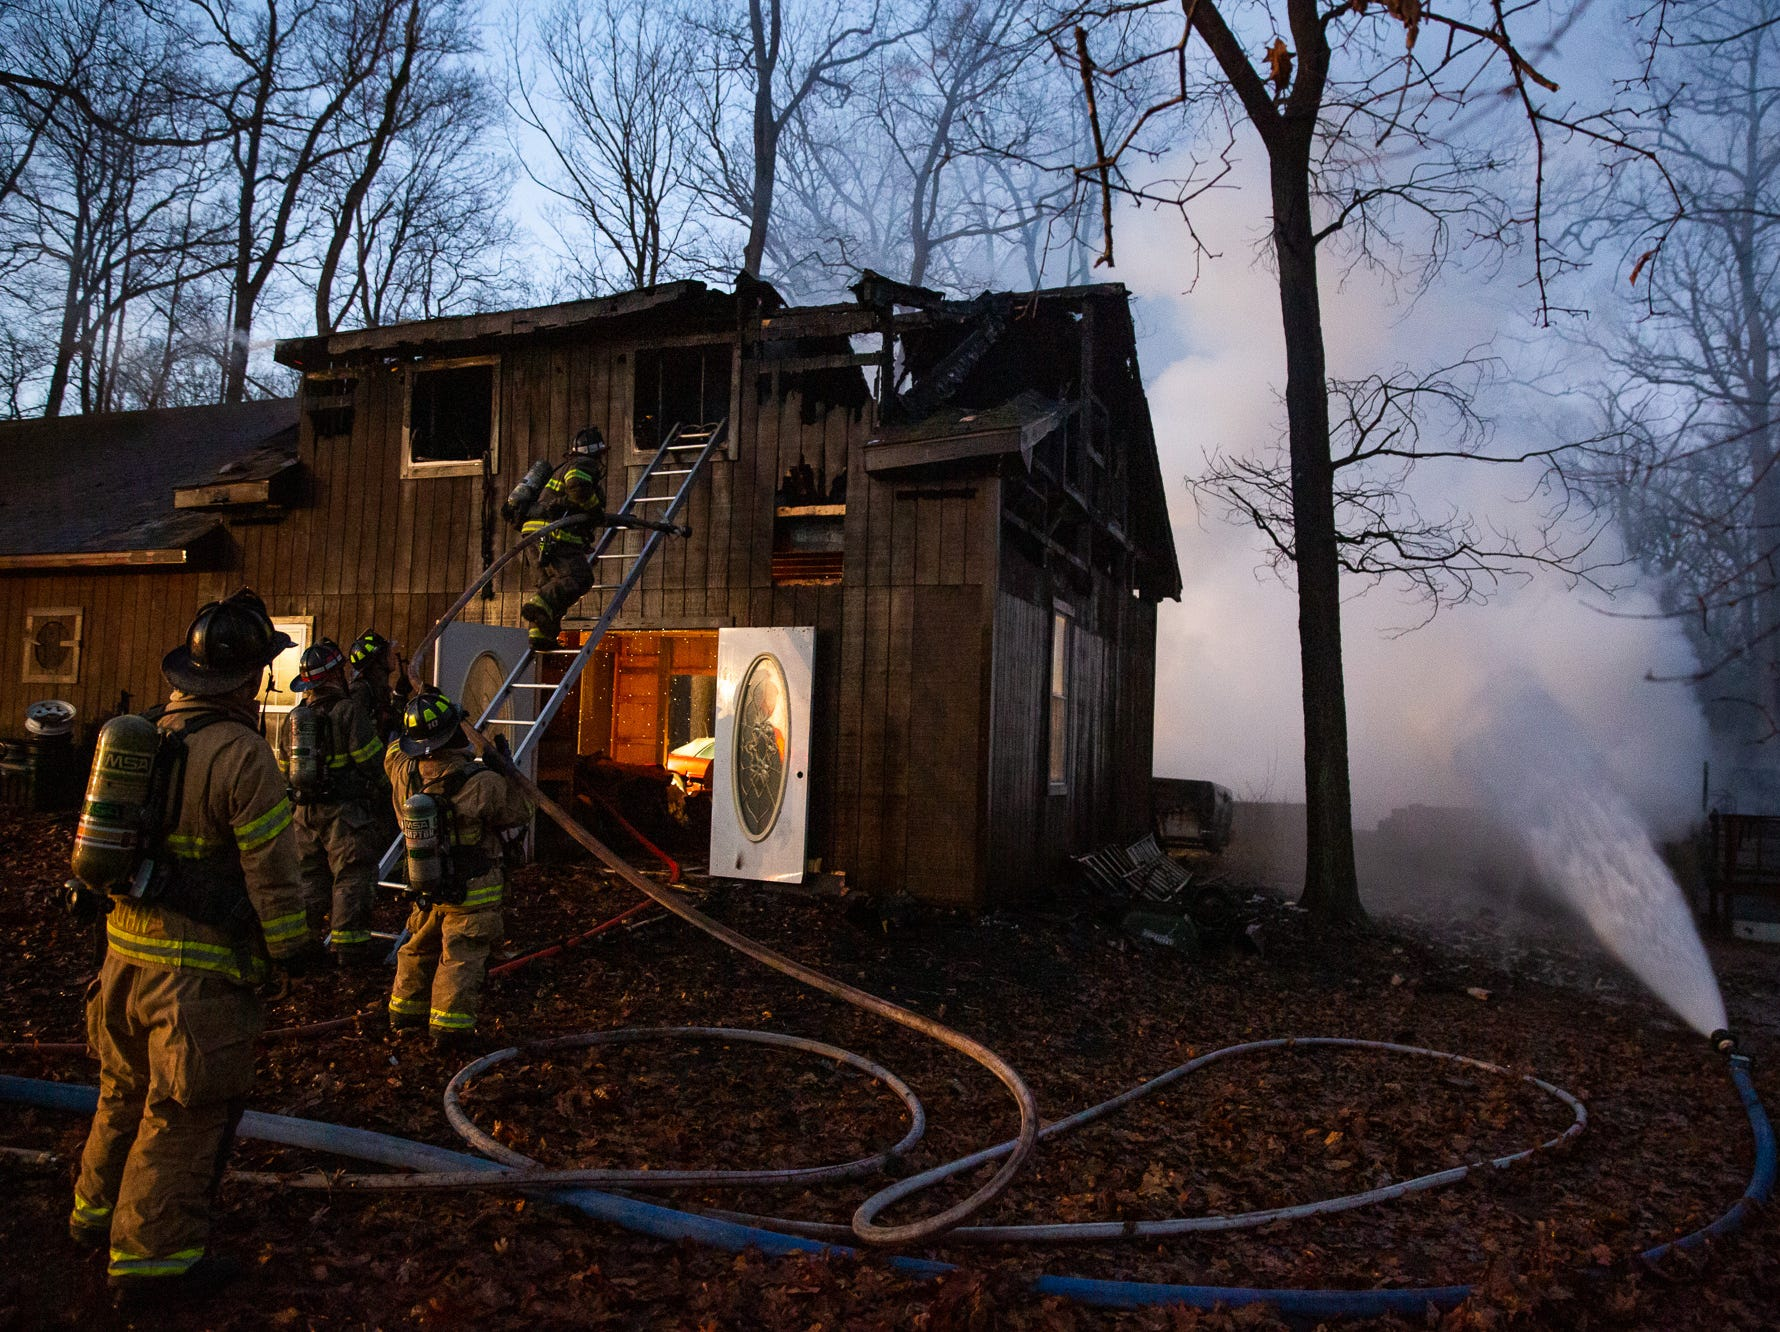 Firefighters work in front of a large detached garage at the scene of a well-involved working house fire on the 200 block of Waldheim Rd., early Sunday, Jan. 6, 2019, in Hamilton Township. Hampton Fire Chief P.J. Trimmer said that the sole occupant of the house was able to escape safely with his dog, and there were no injuries in the fire. The house, which collapsed into the basement, is a total loss, and the detached garage suffered extensive damage, said Trimmer.